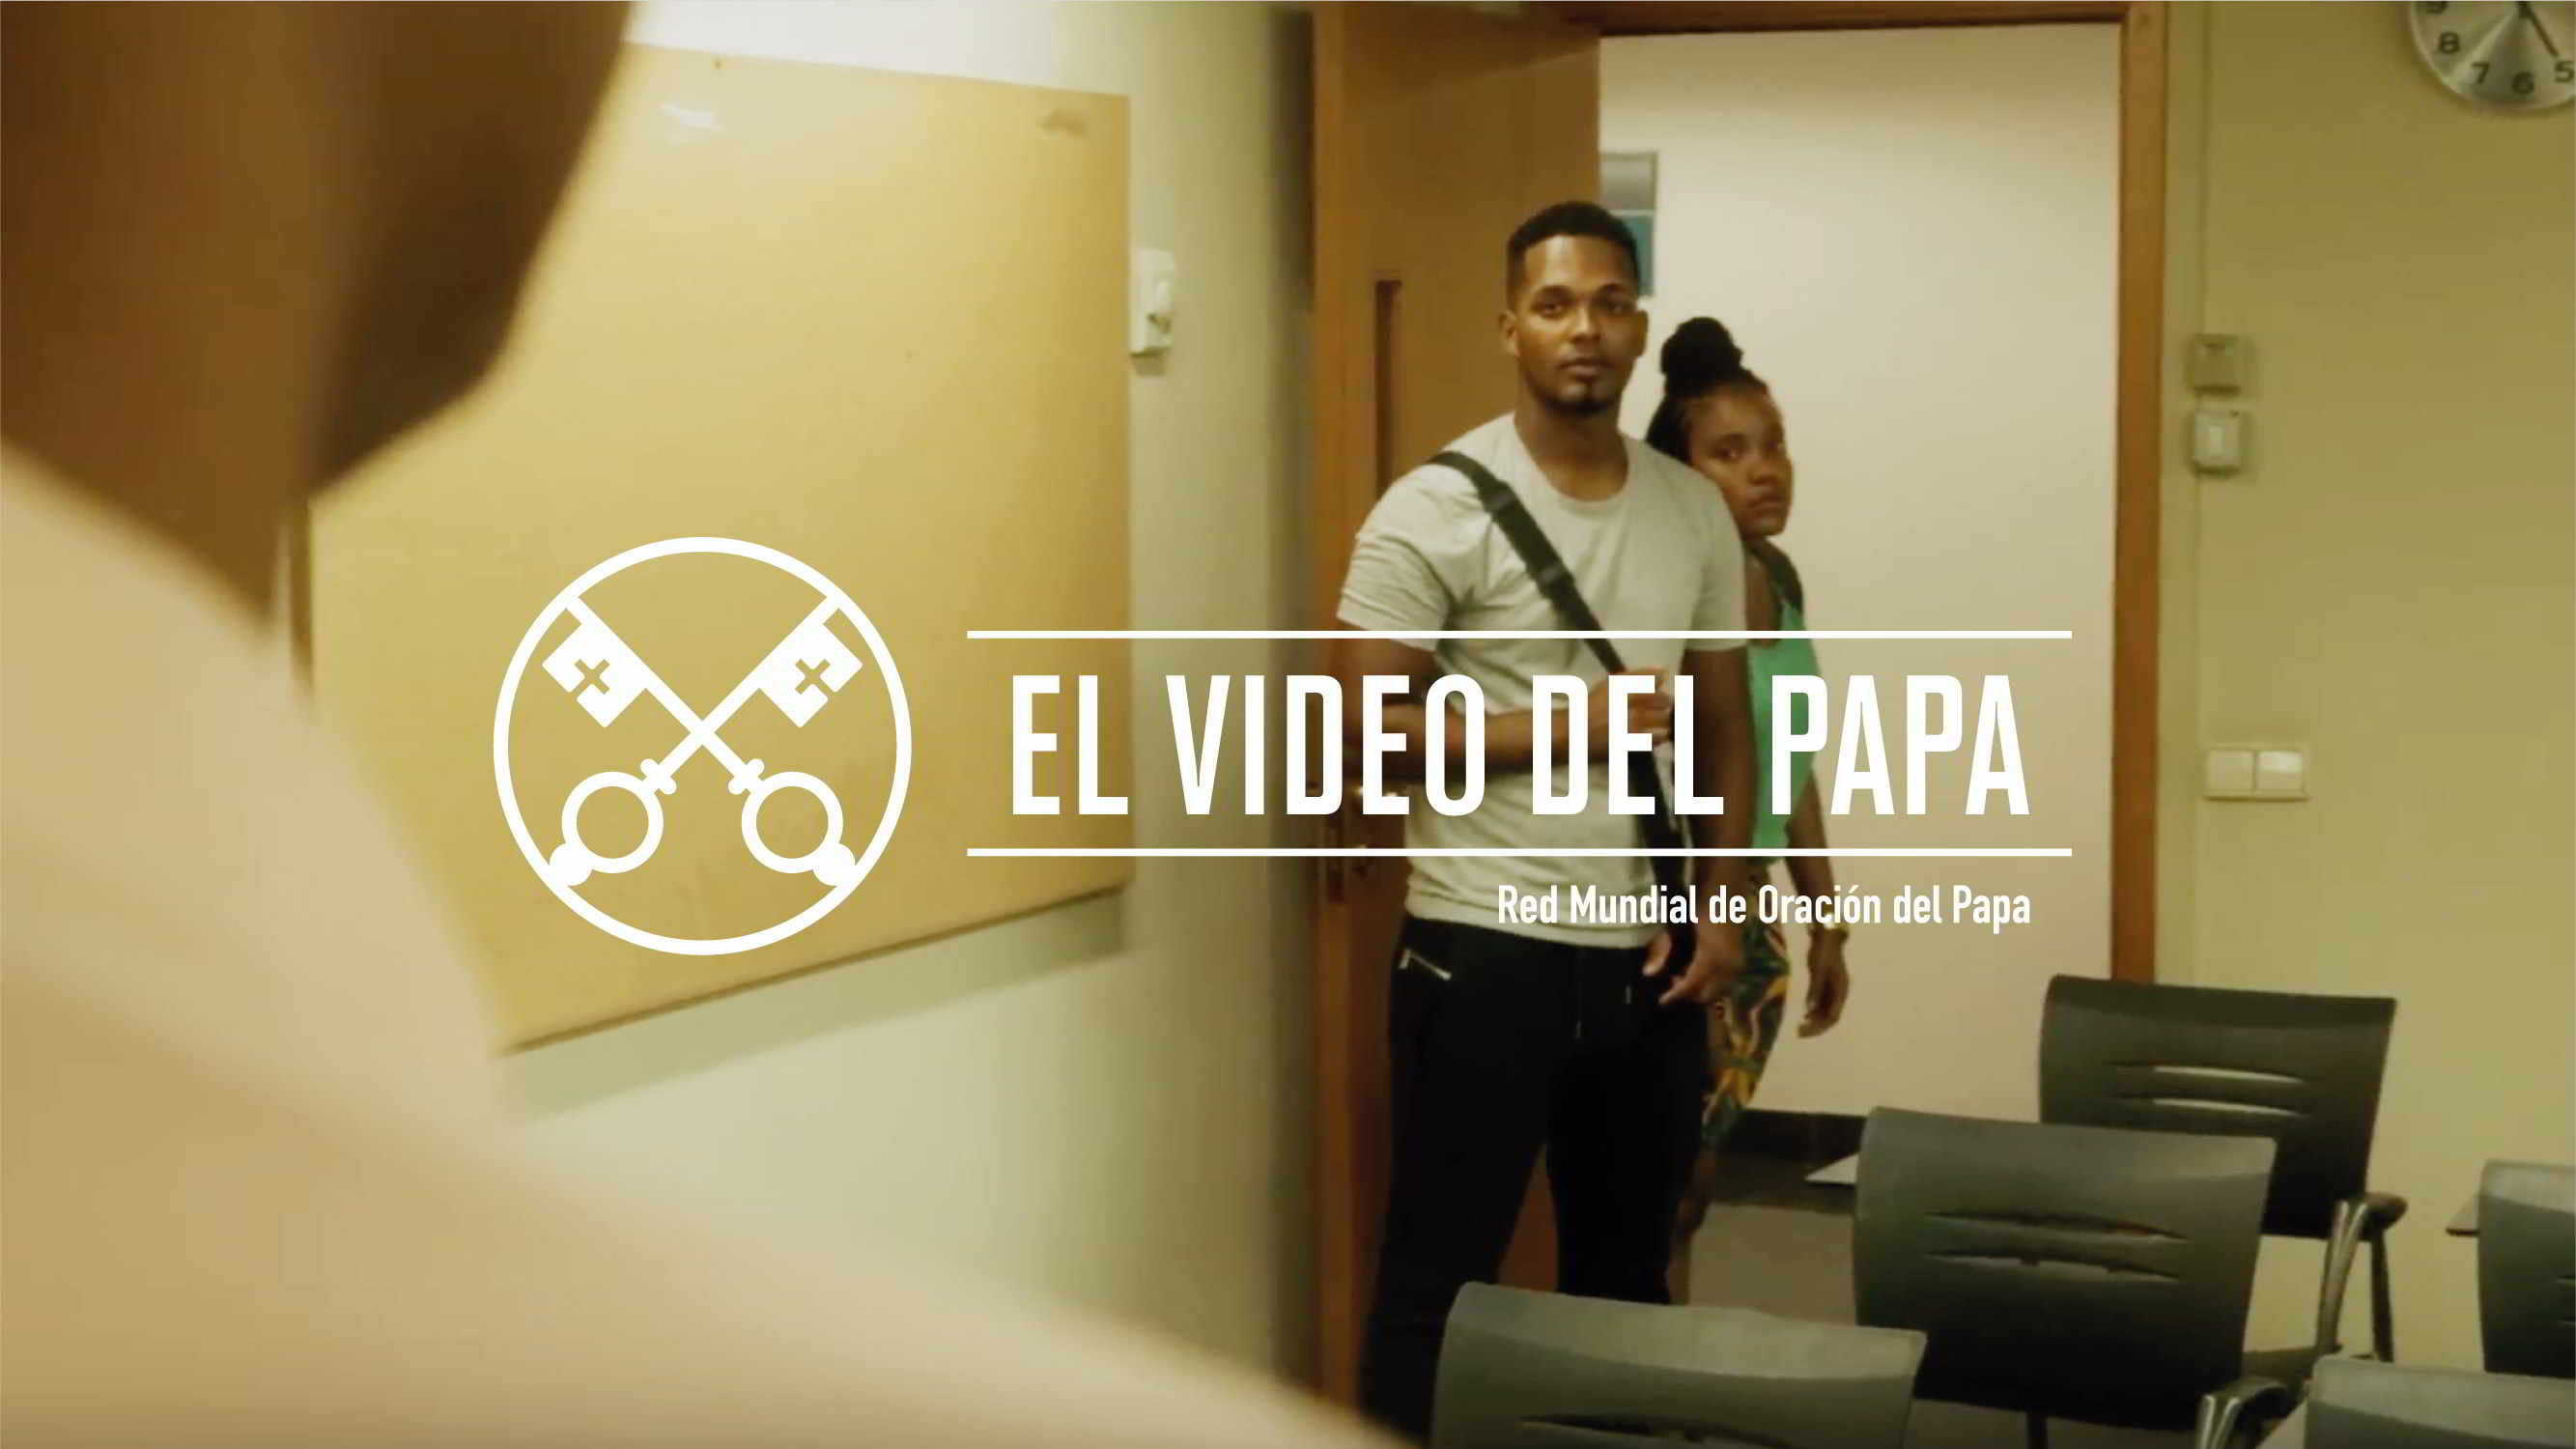 Official Image - The Pope Video 9 2018 - Young People in Africa - 2 Spanish